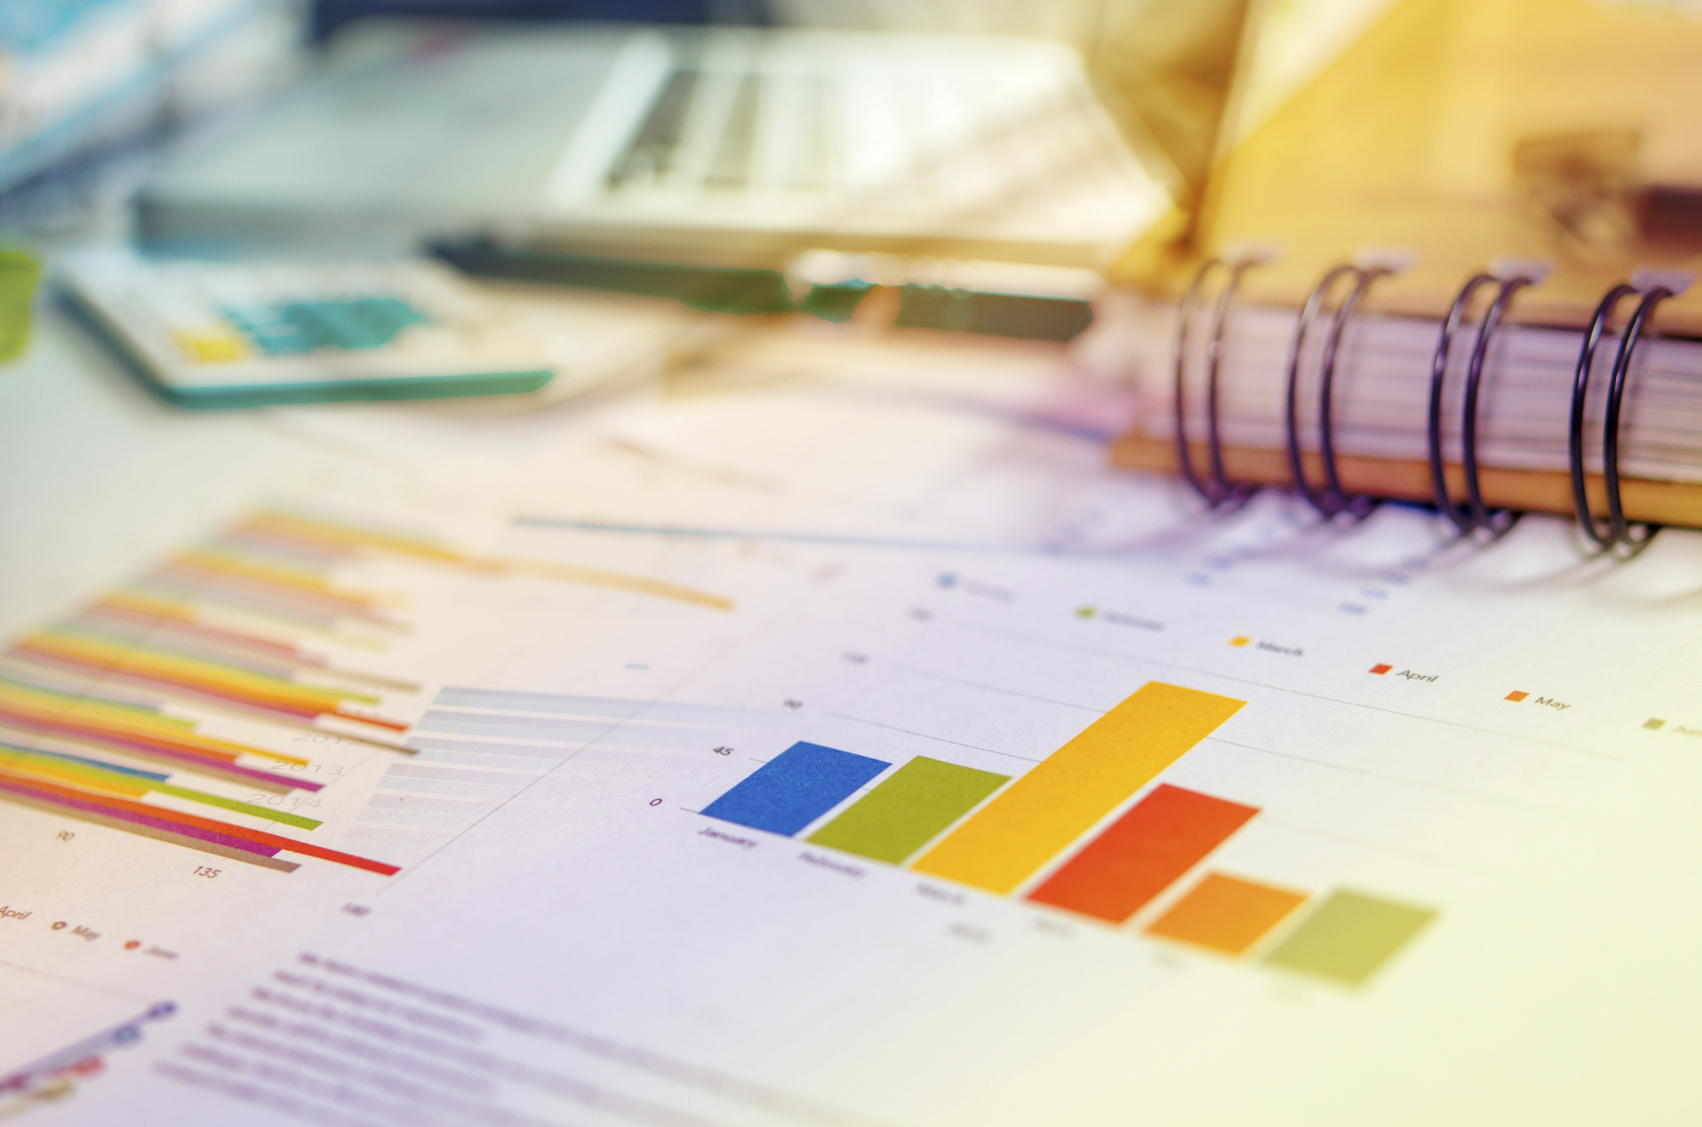 Graphs and charts, business table. The workplace of business people.